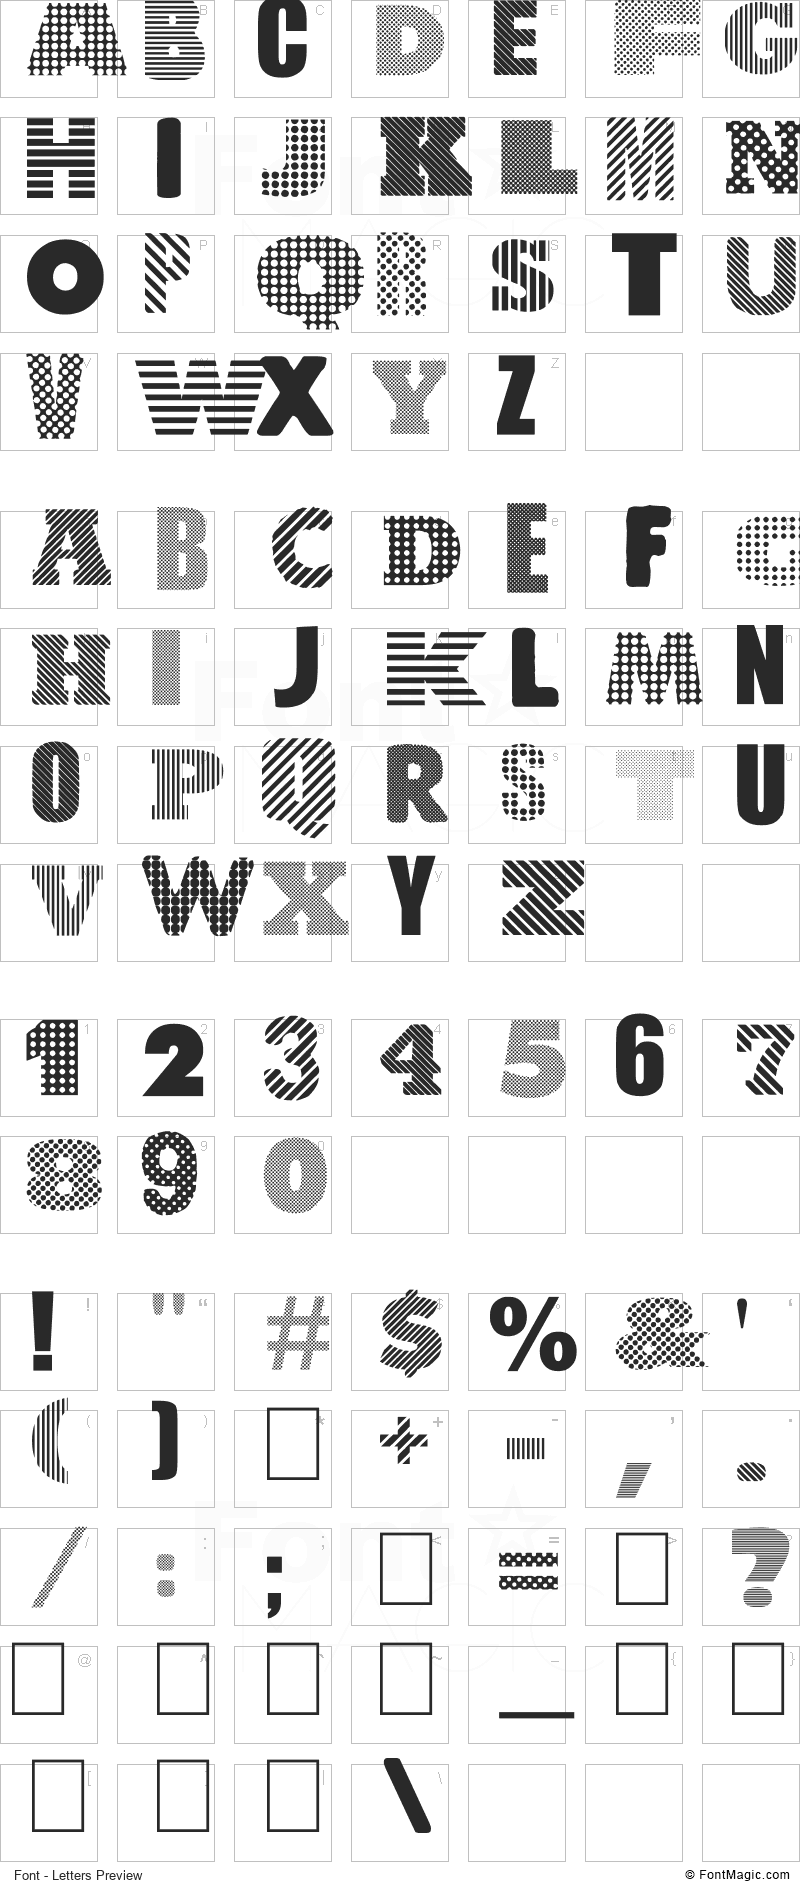 Roundabout Font - All Latters Preview Chart